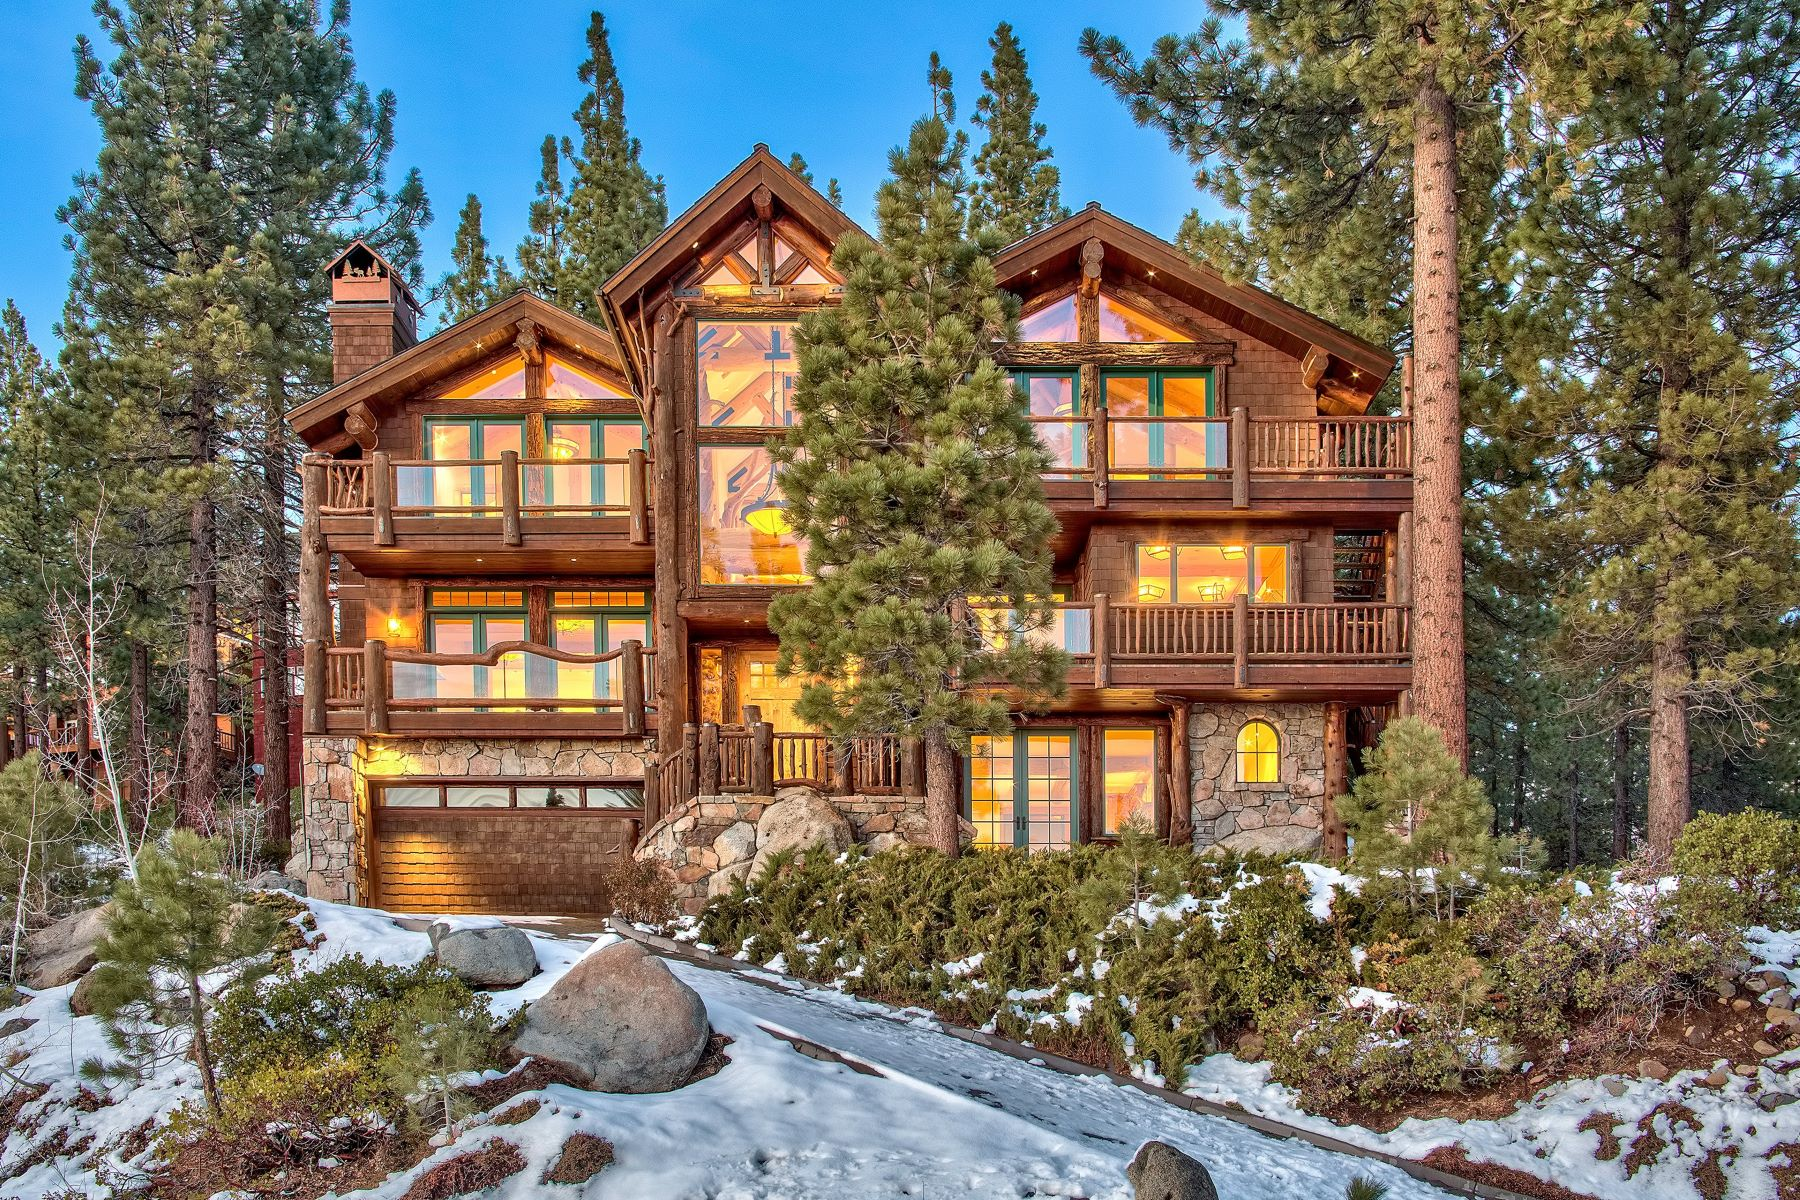 Property for Active at Panoramic Lake Views 591 Pinto Ct Incline Village, Nevada 89451 United States